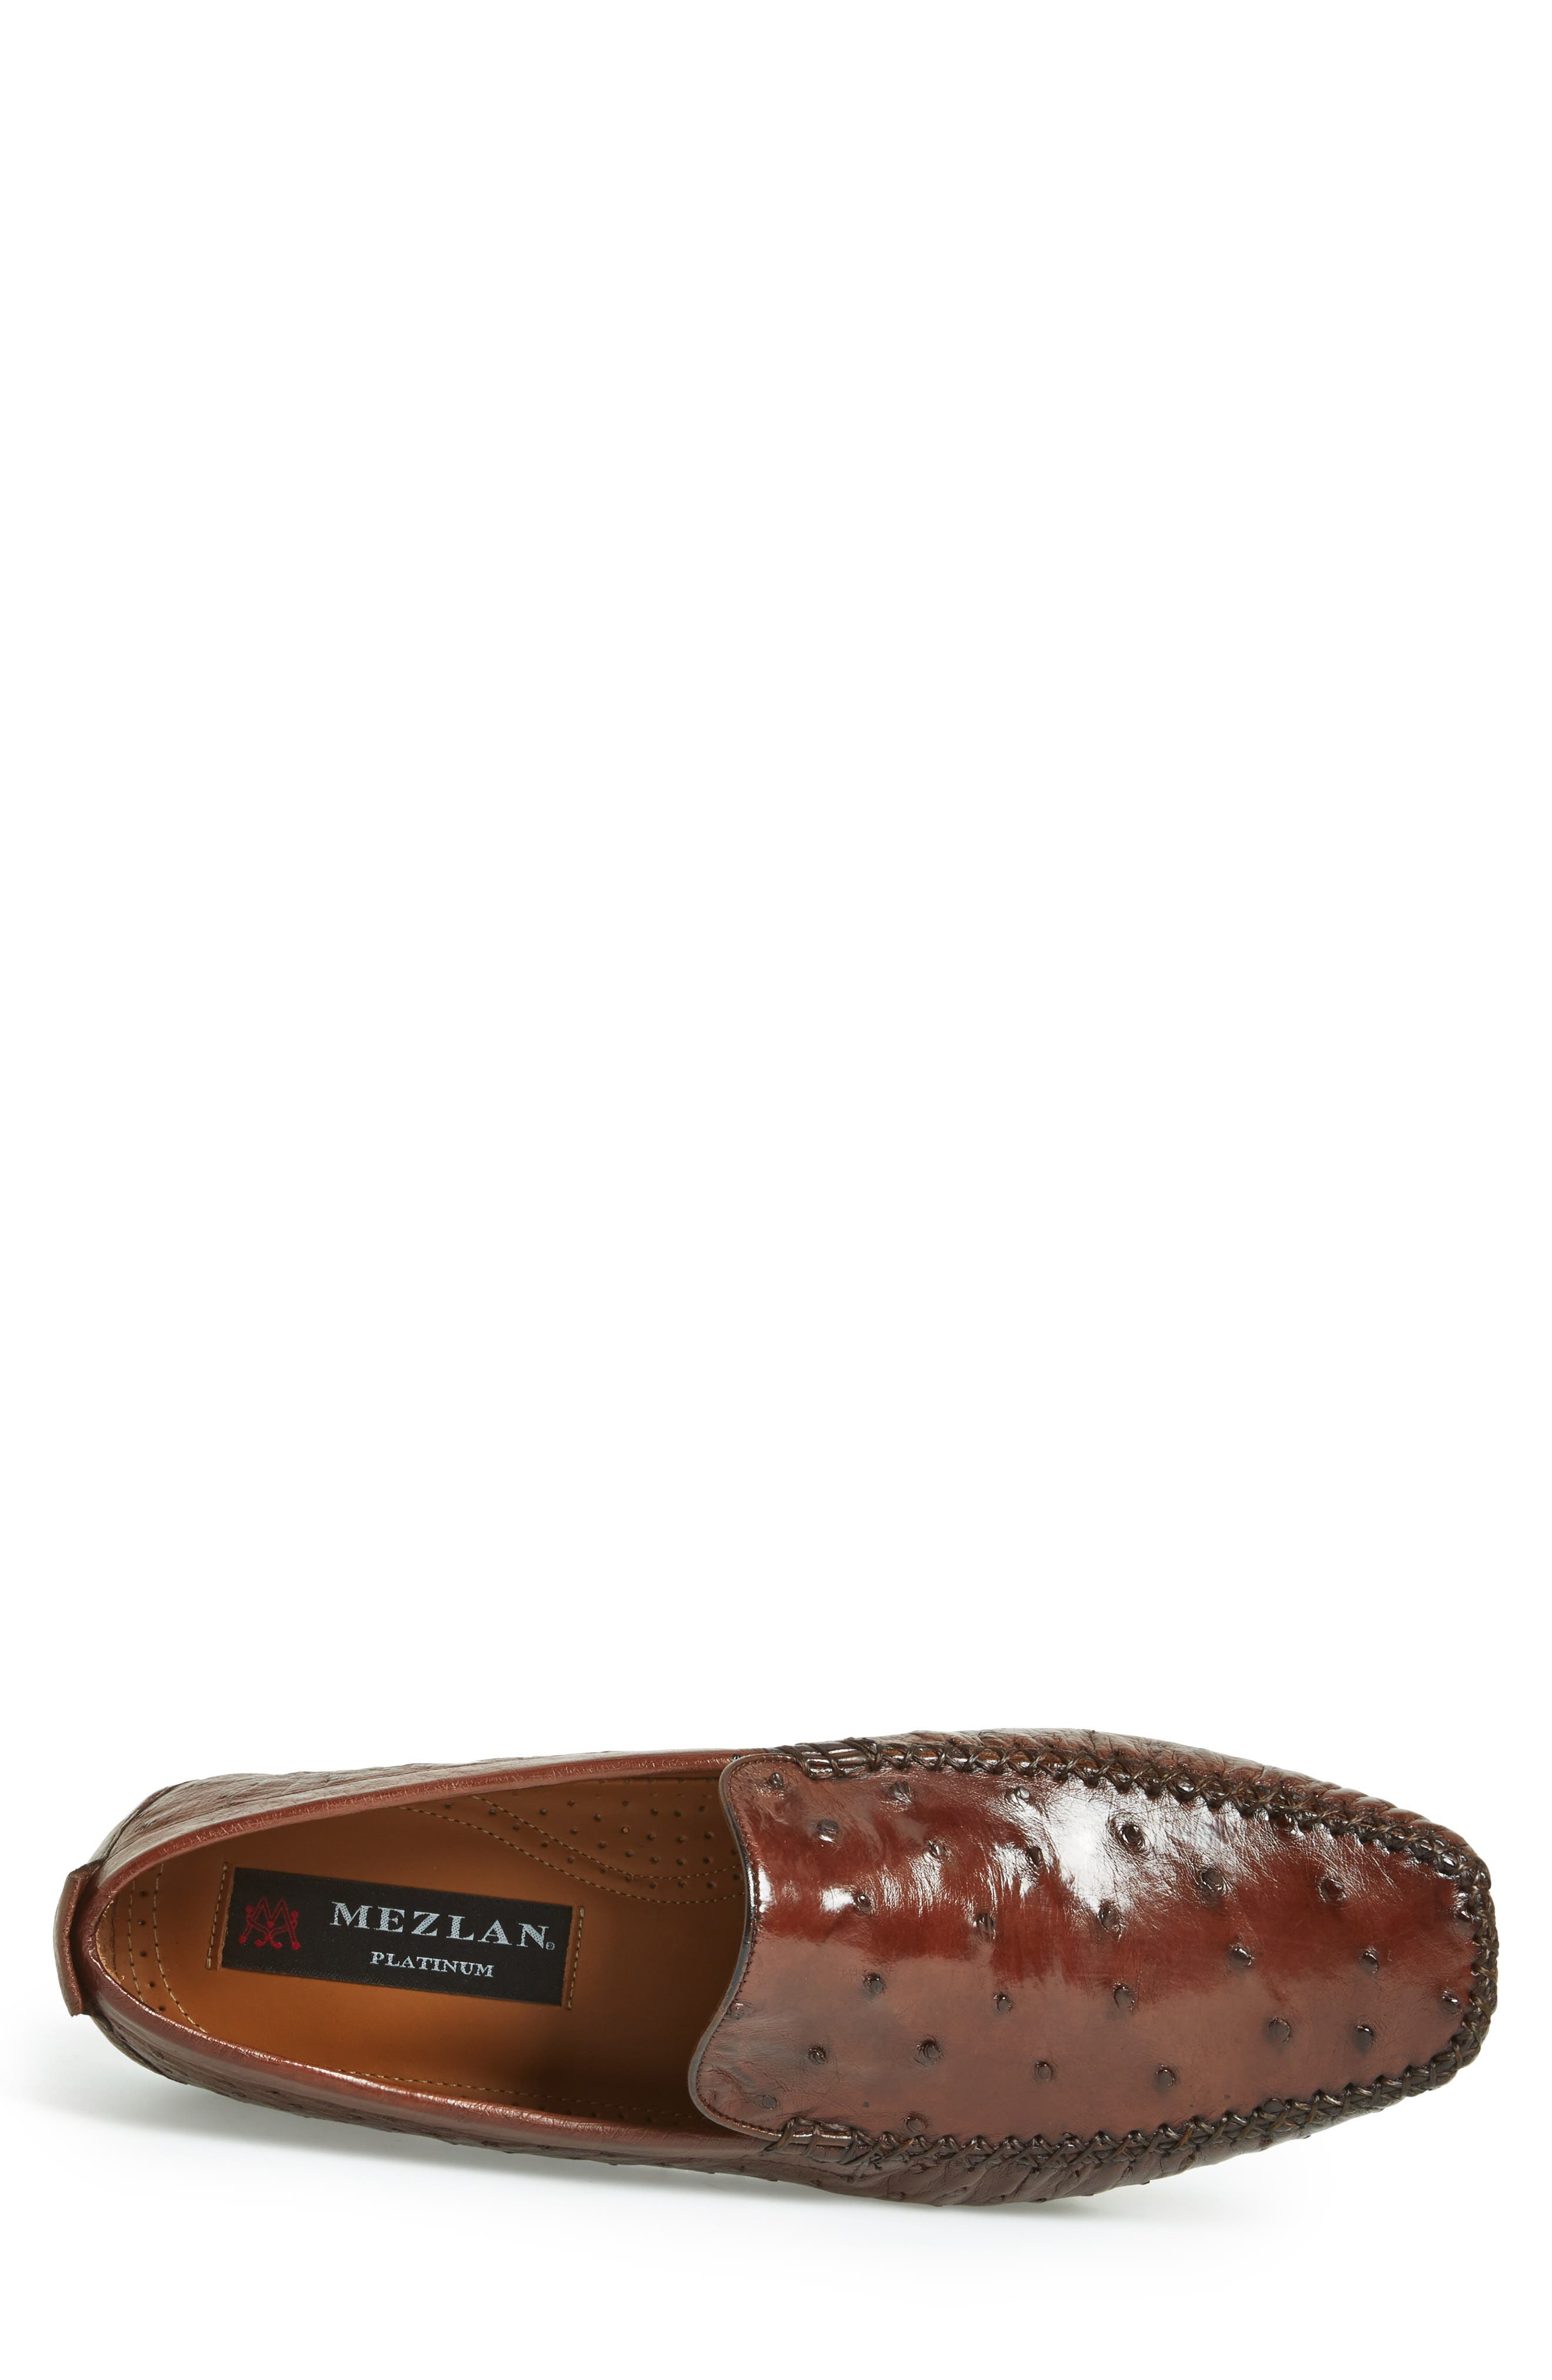 'Rollini' Ostrich Leather Loafer,                             Alternate thumbnail 3, color,                             TOBACCO